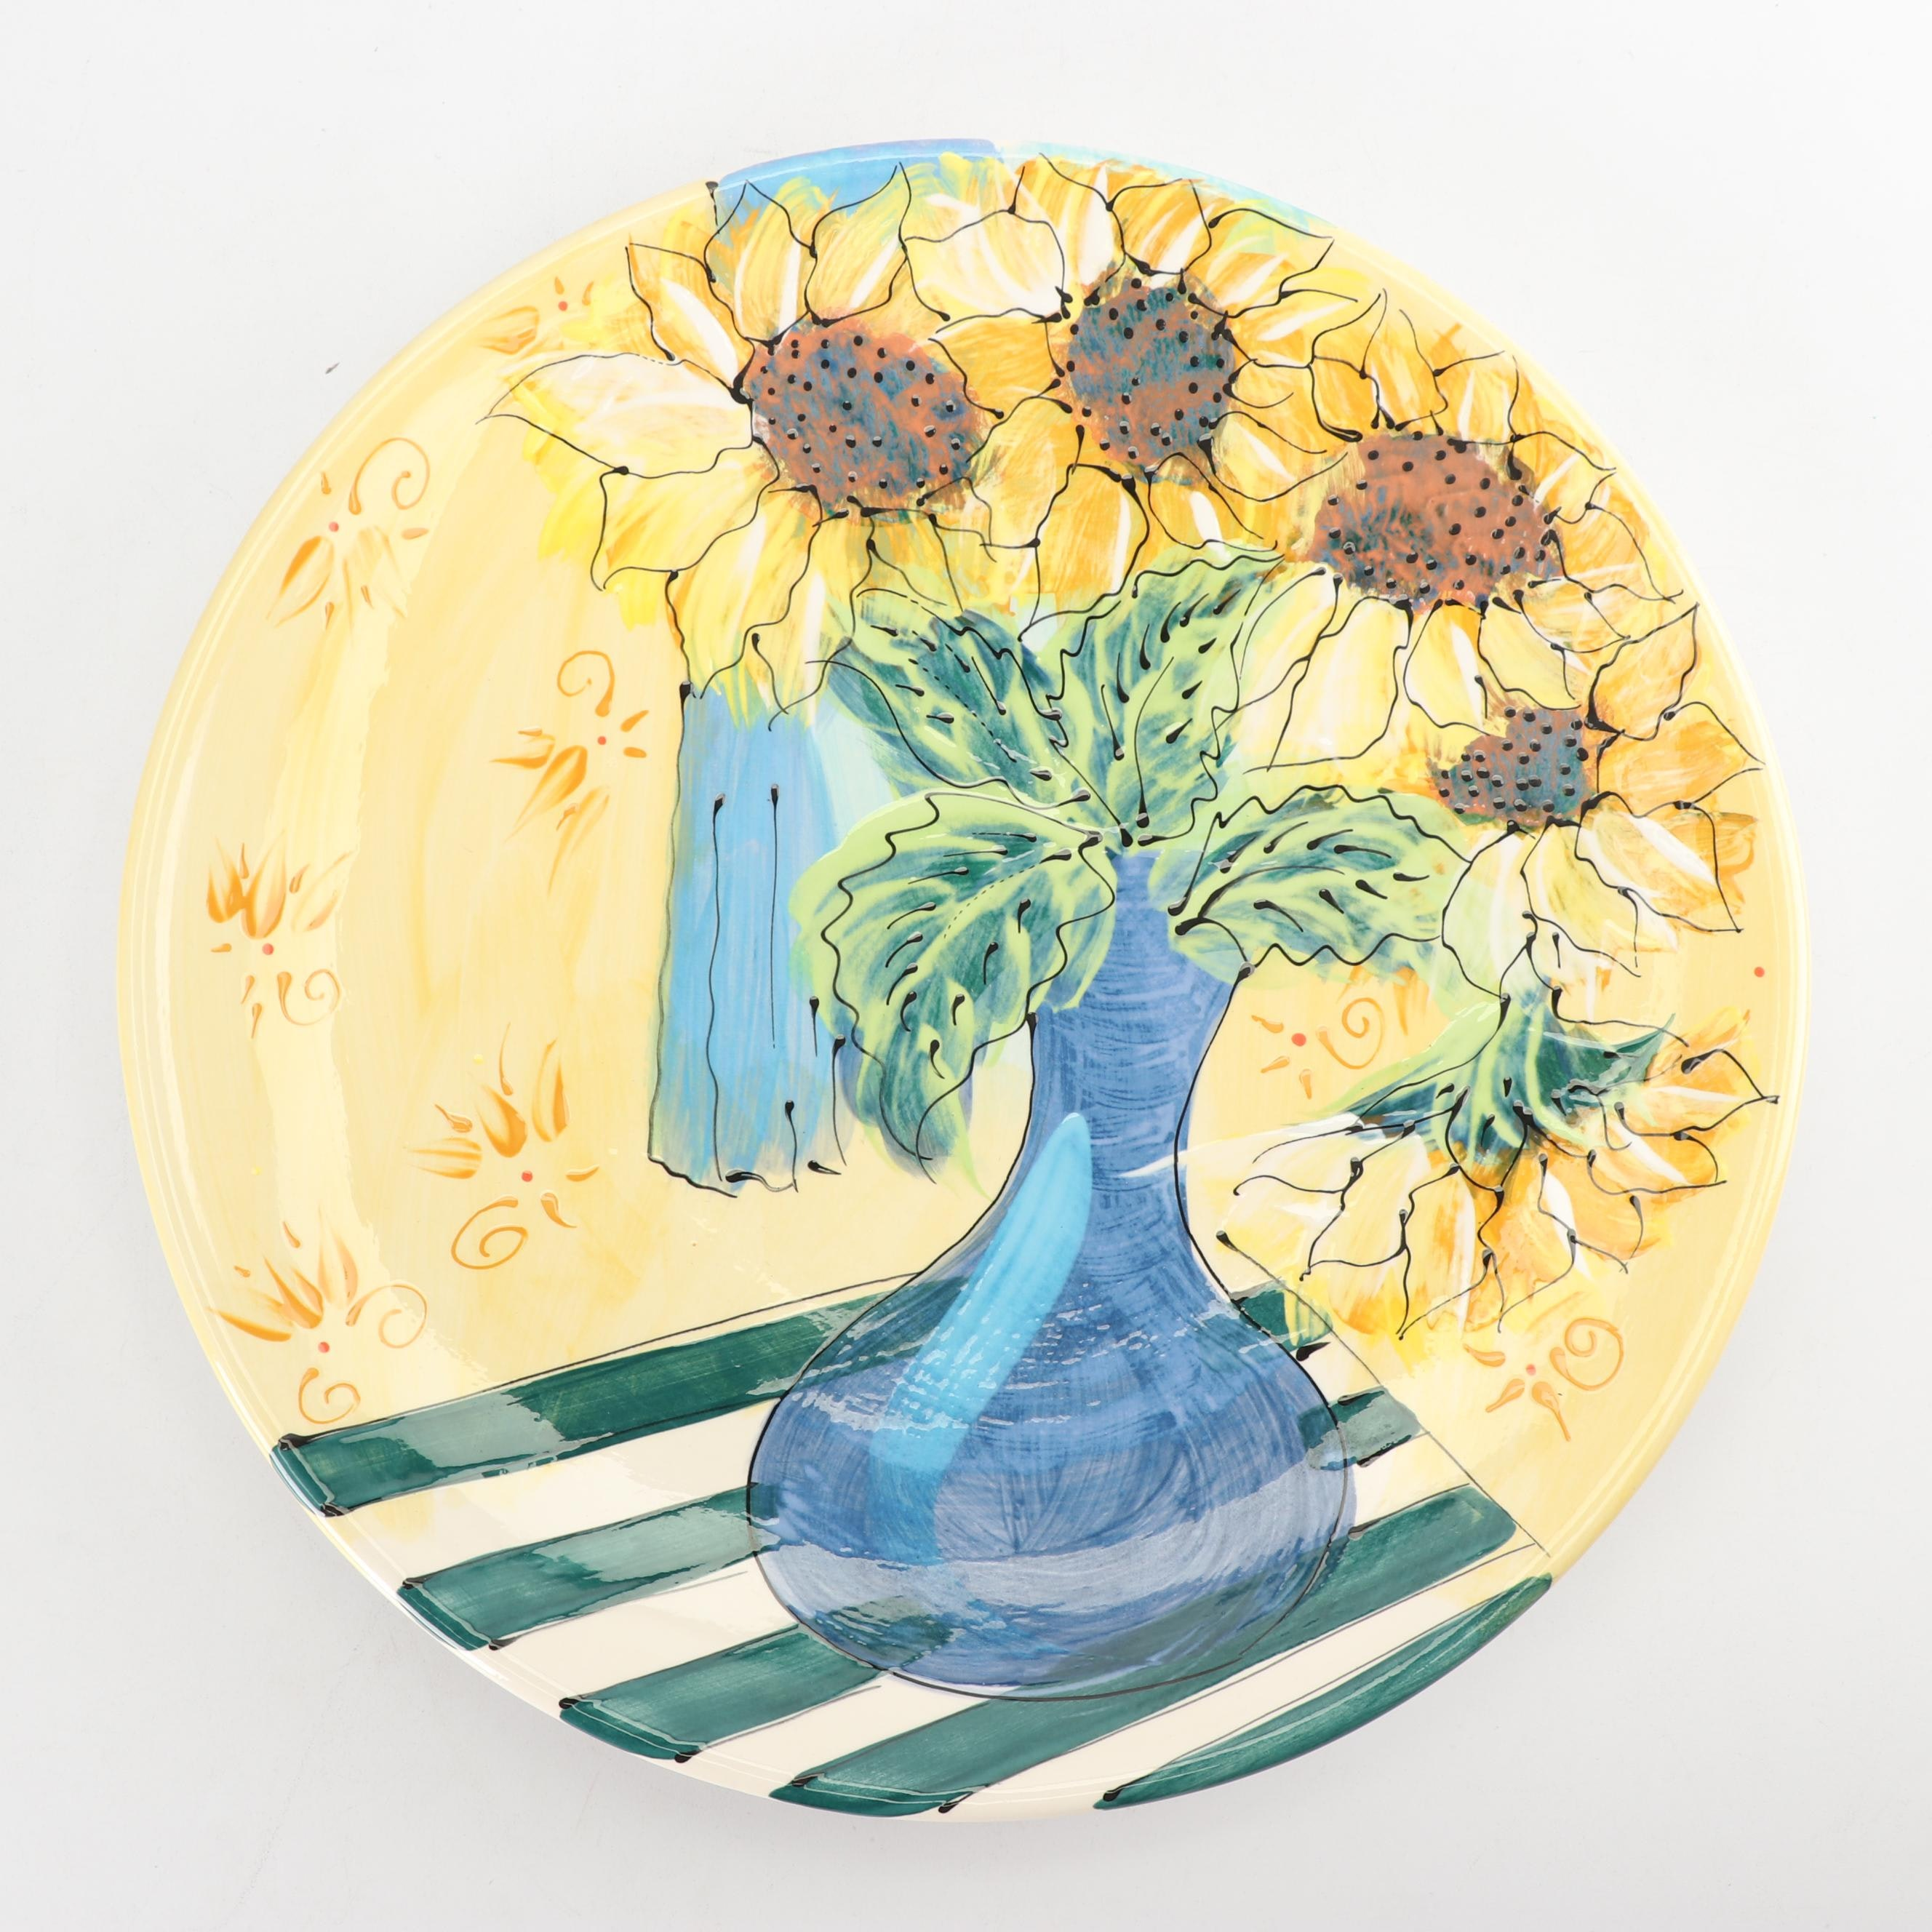 Artables by Debra Durrer Hand Painted Ceramic Platter